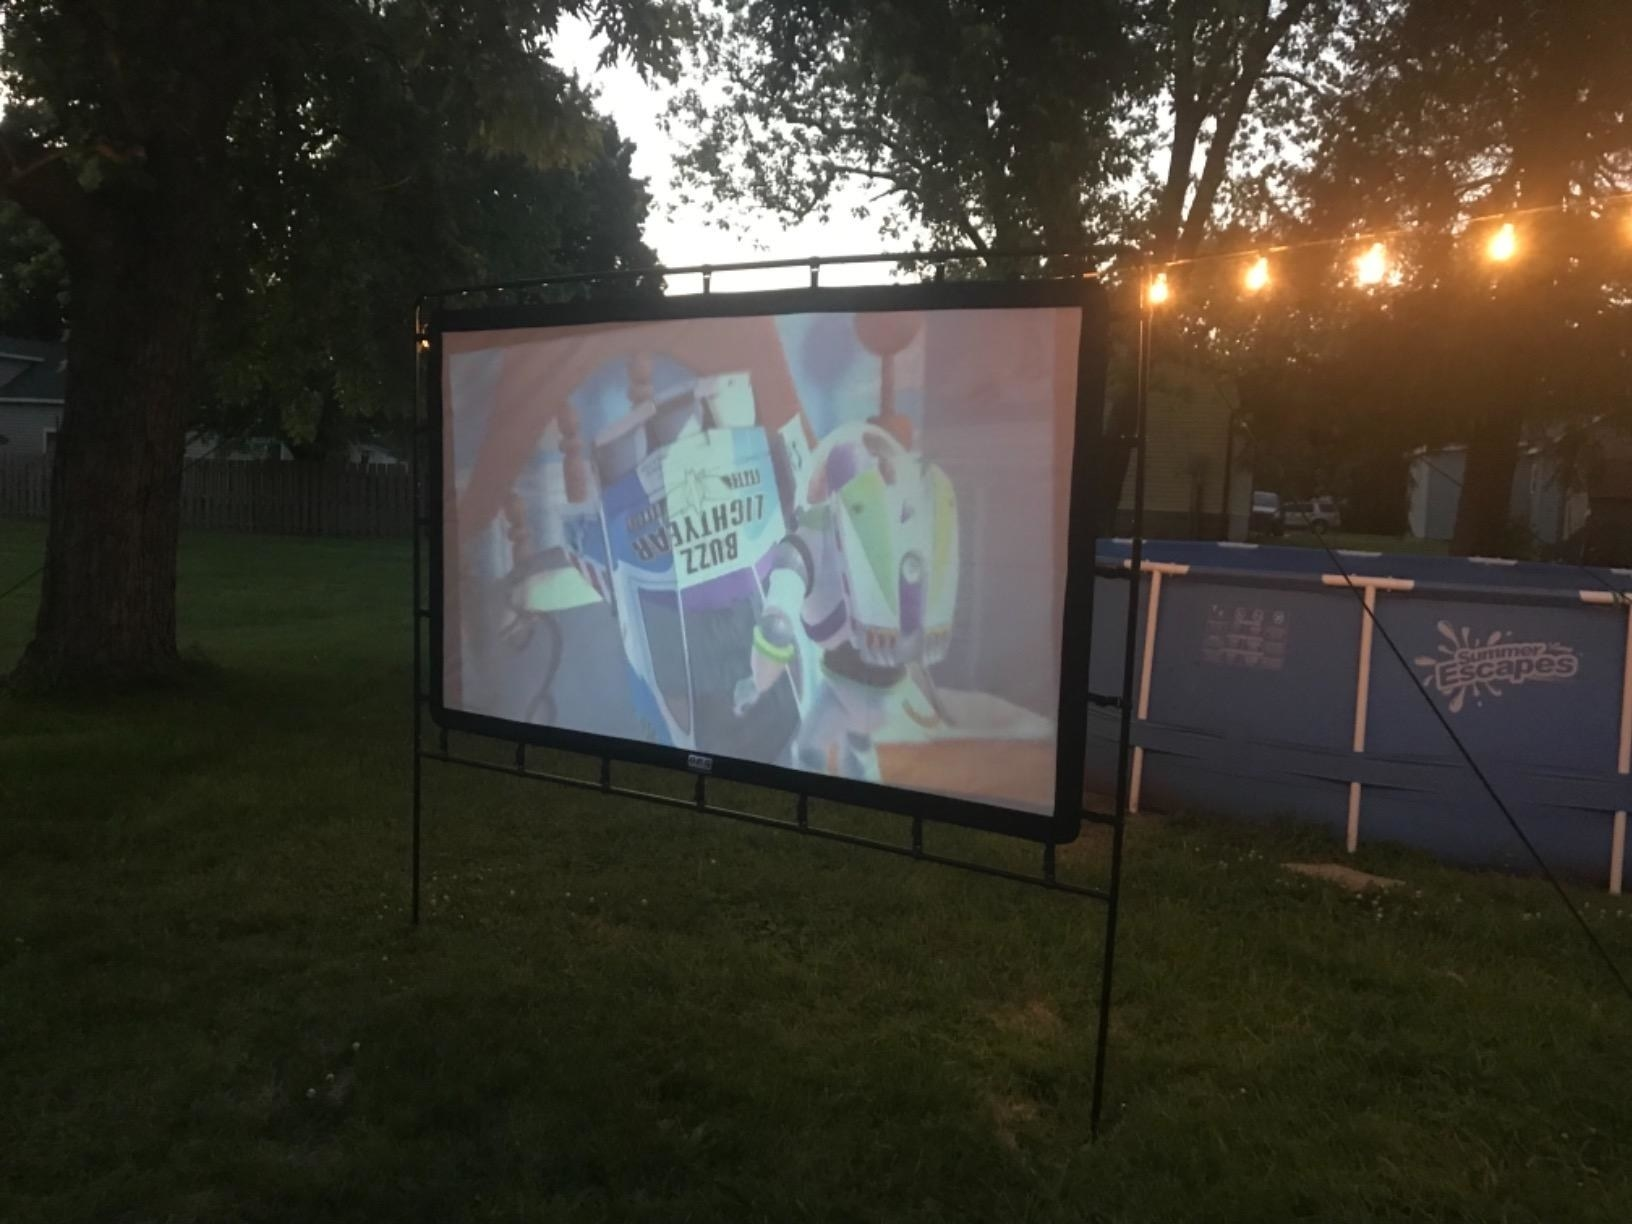 Reviewer photo of the movie screen set up in a backyard with Toy Story playing on the screen